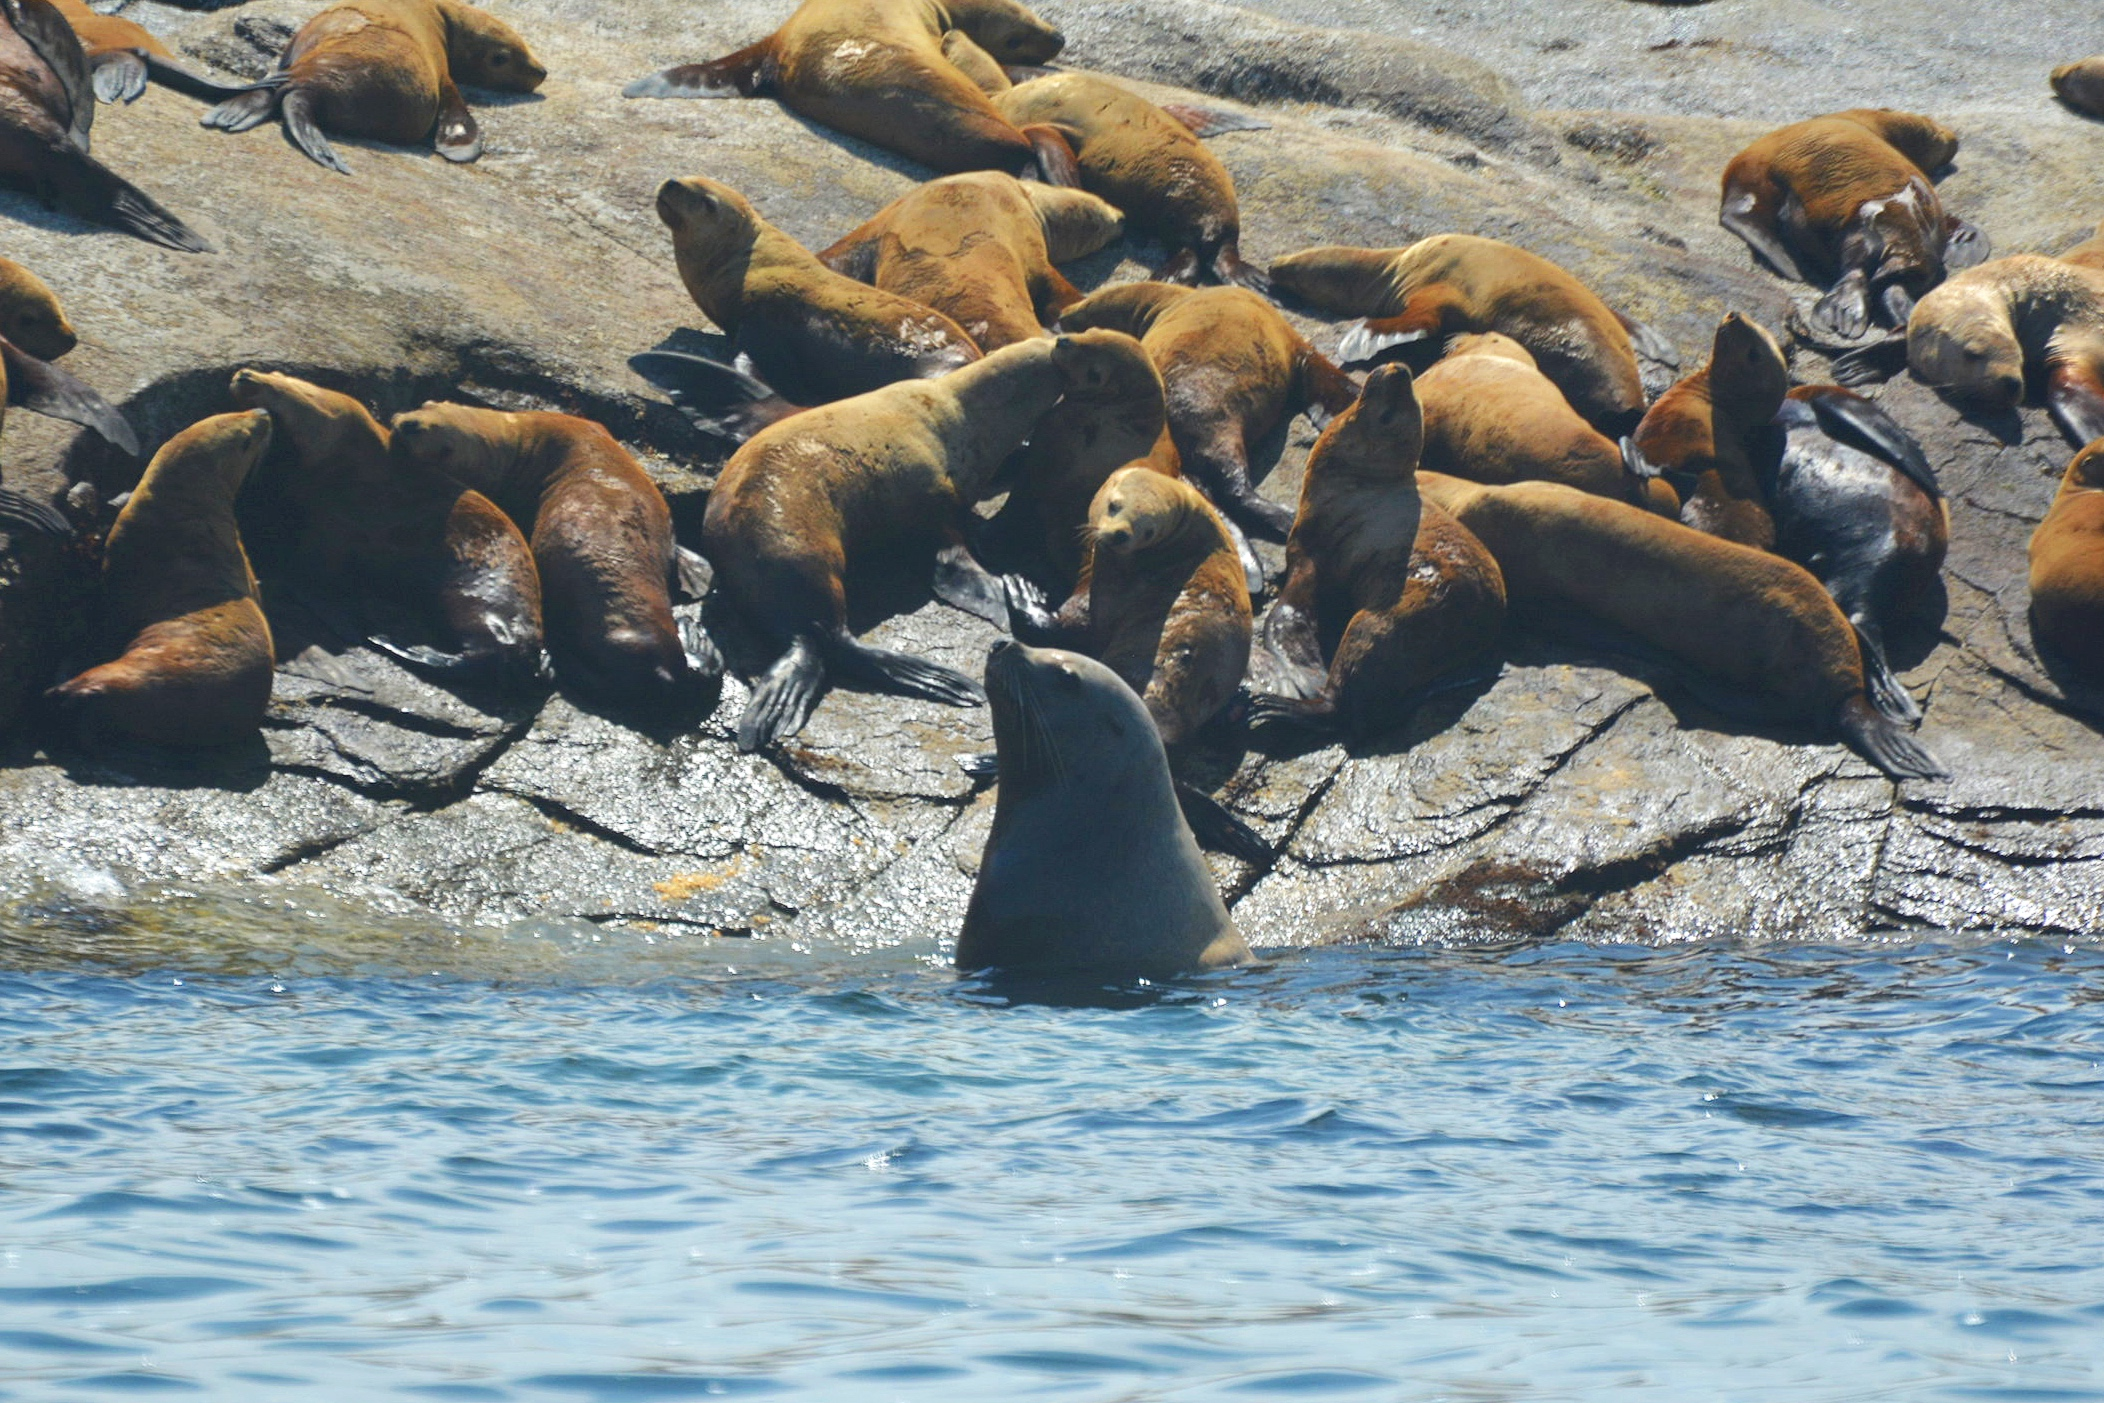 Challenging male Steller's Sea Lion. Photo by Rebeka Pirker.